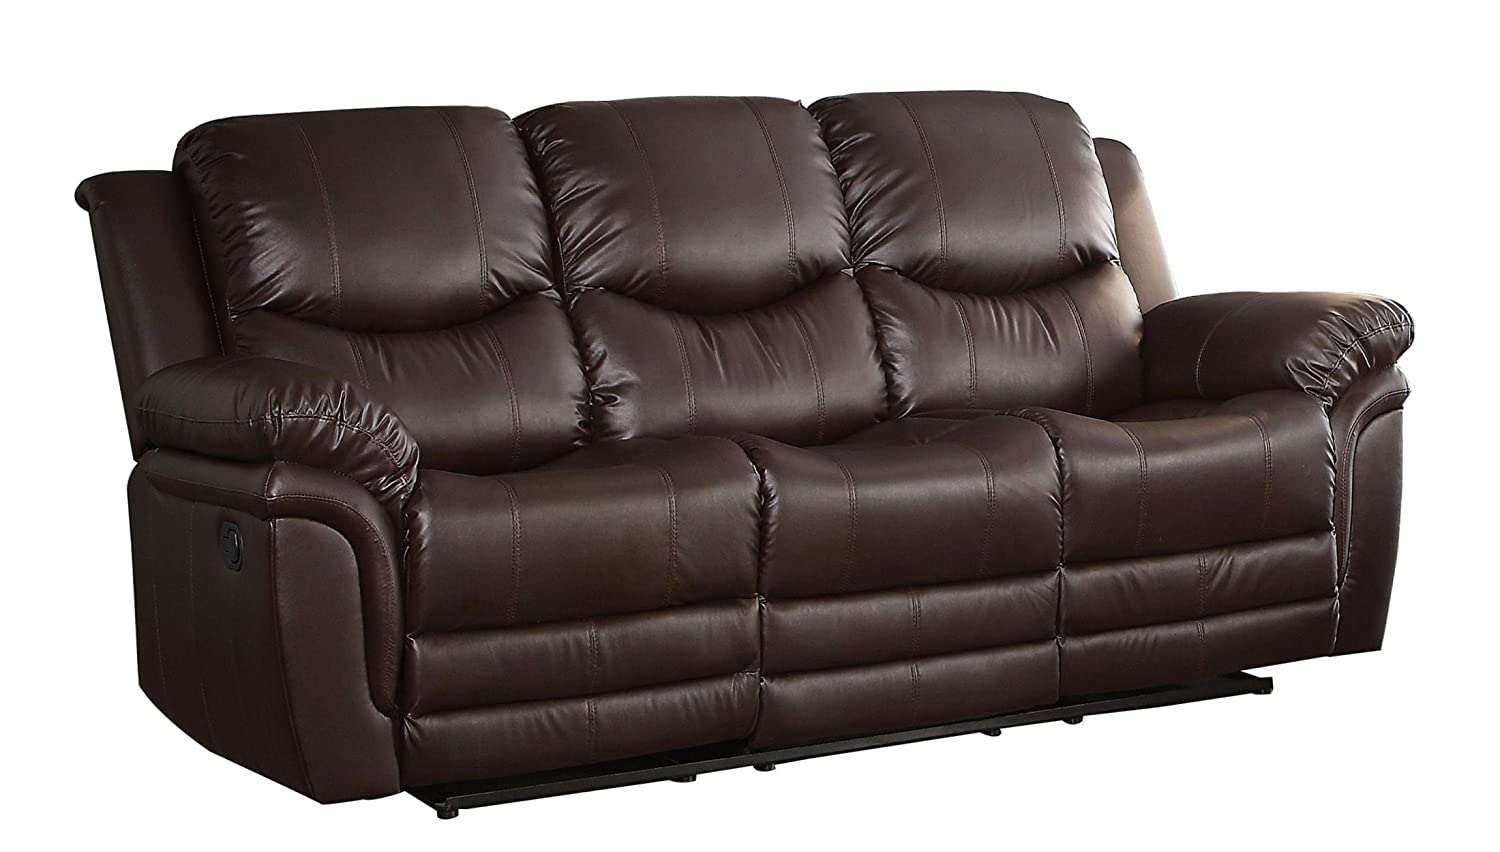 Homelegance St Louis Park Double Reclining Sofa in Brown Leather